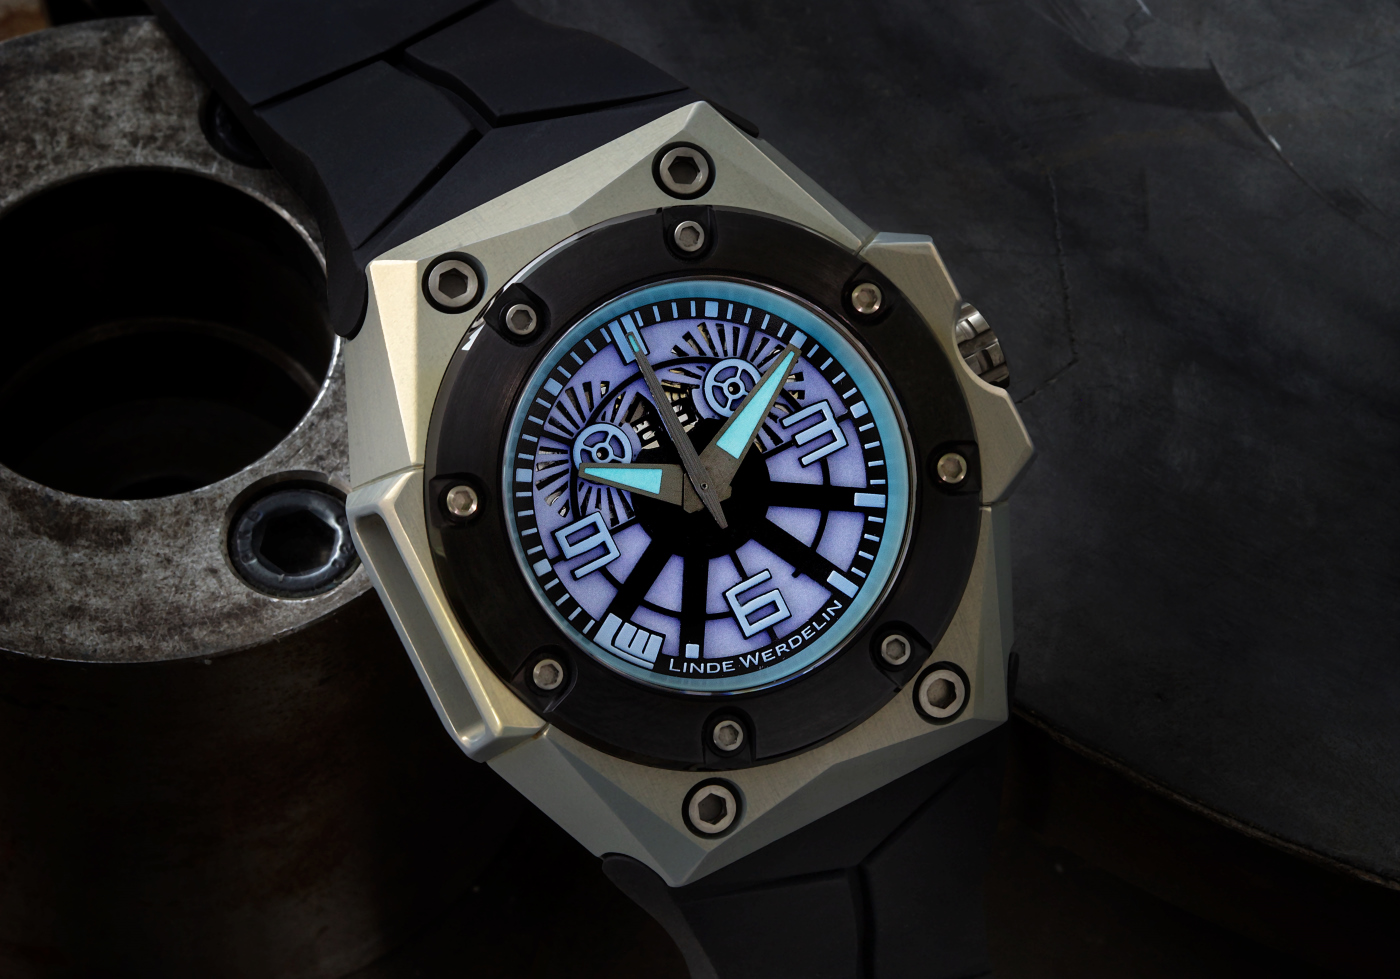 Linde_Werdelin_oktopus_blue_sea_5_-_Europa_Star_watch_magazine_2020